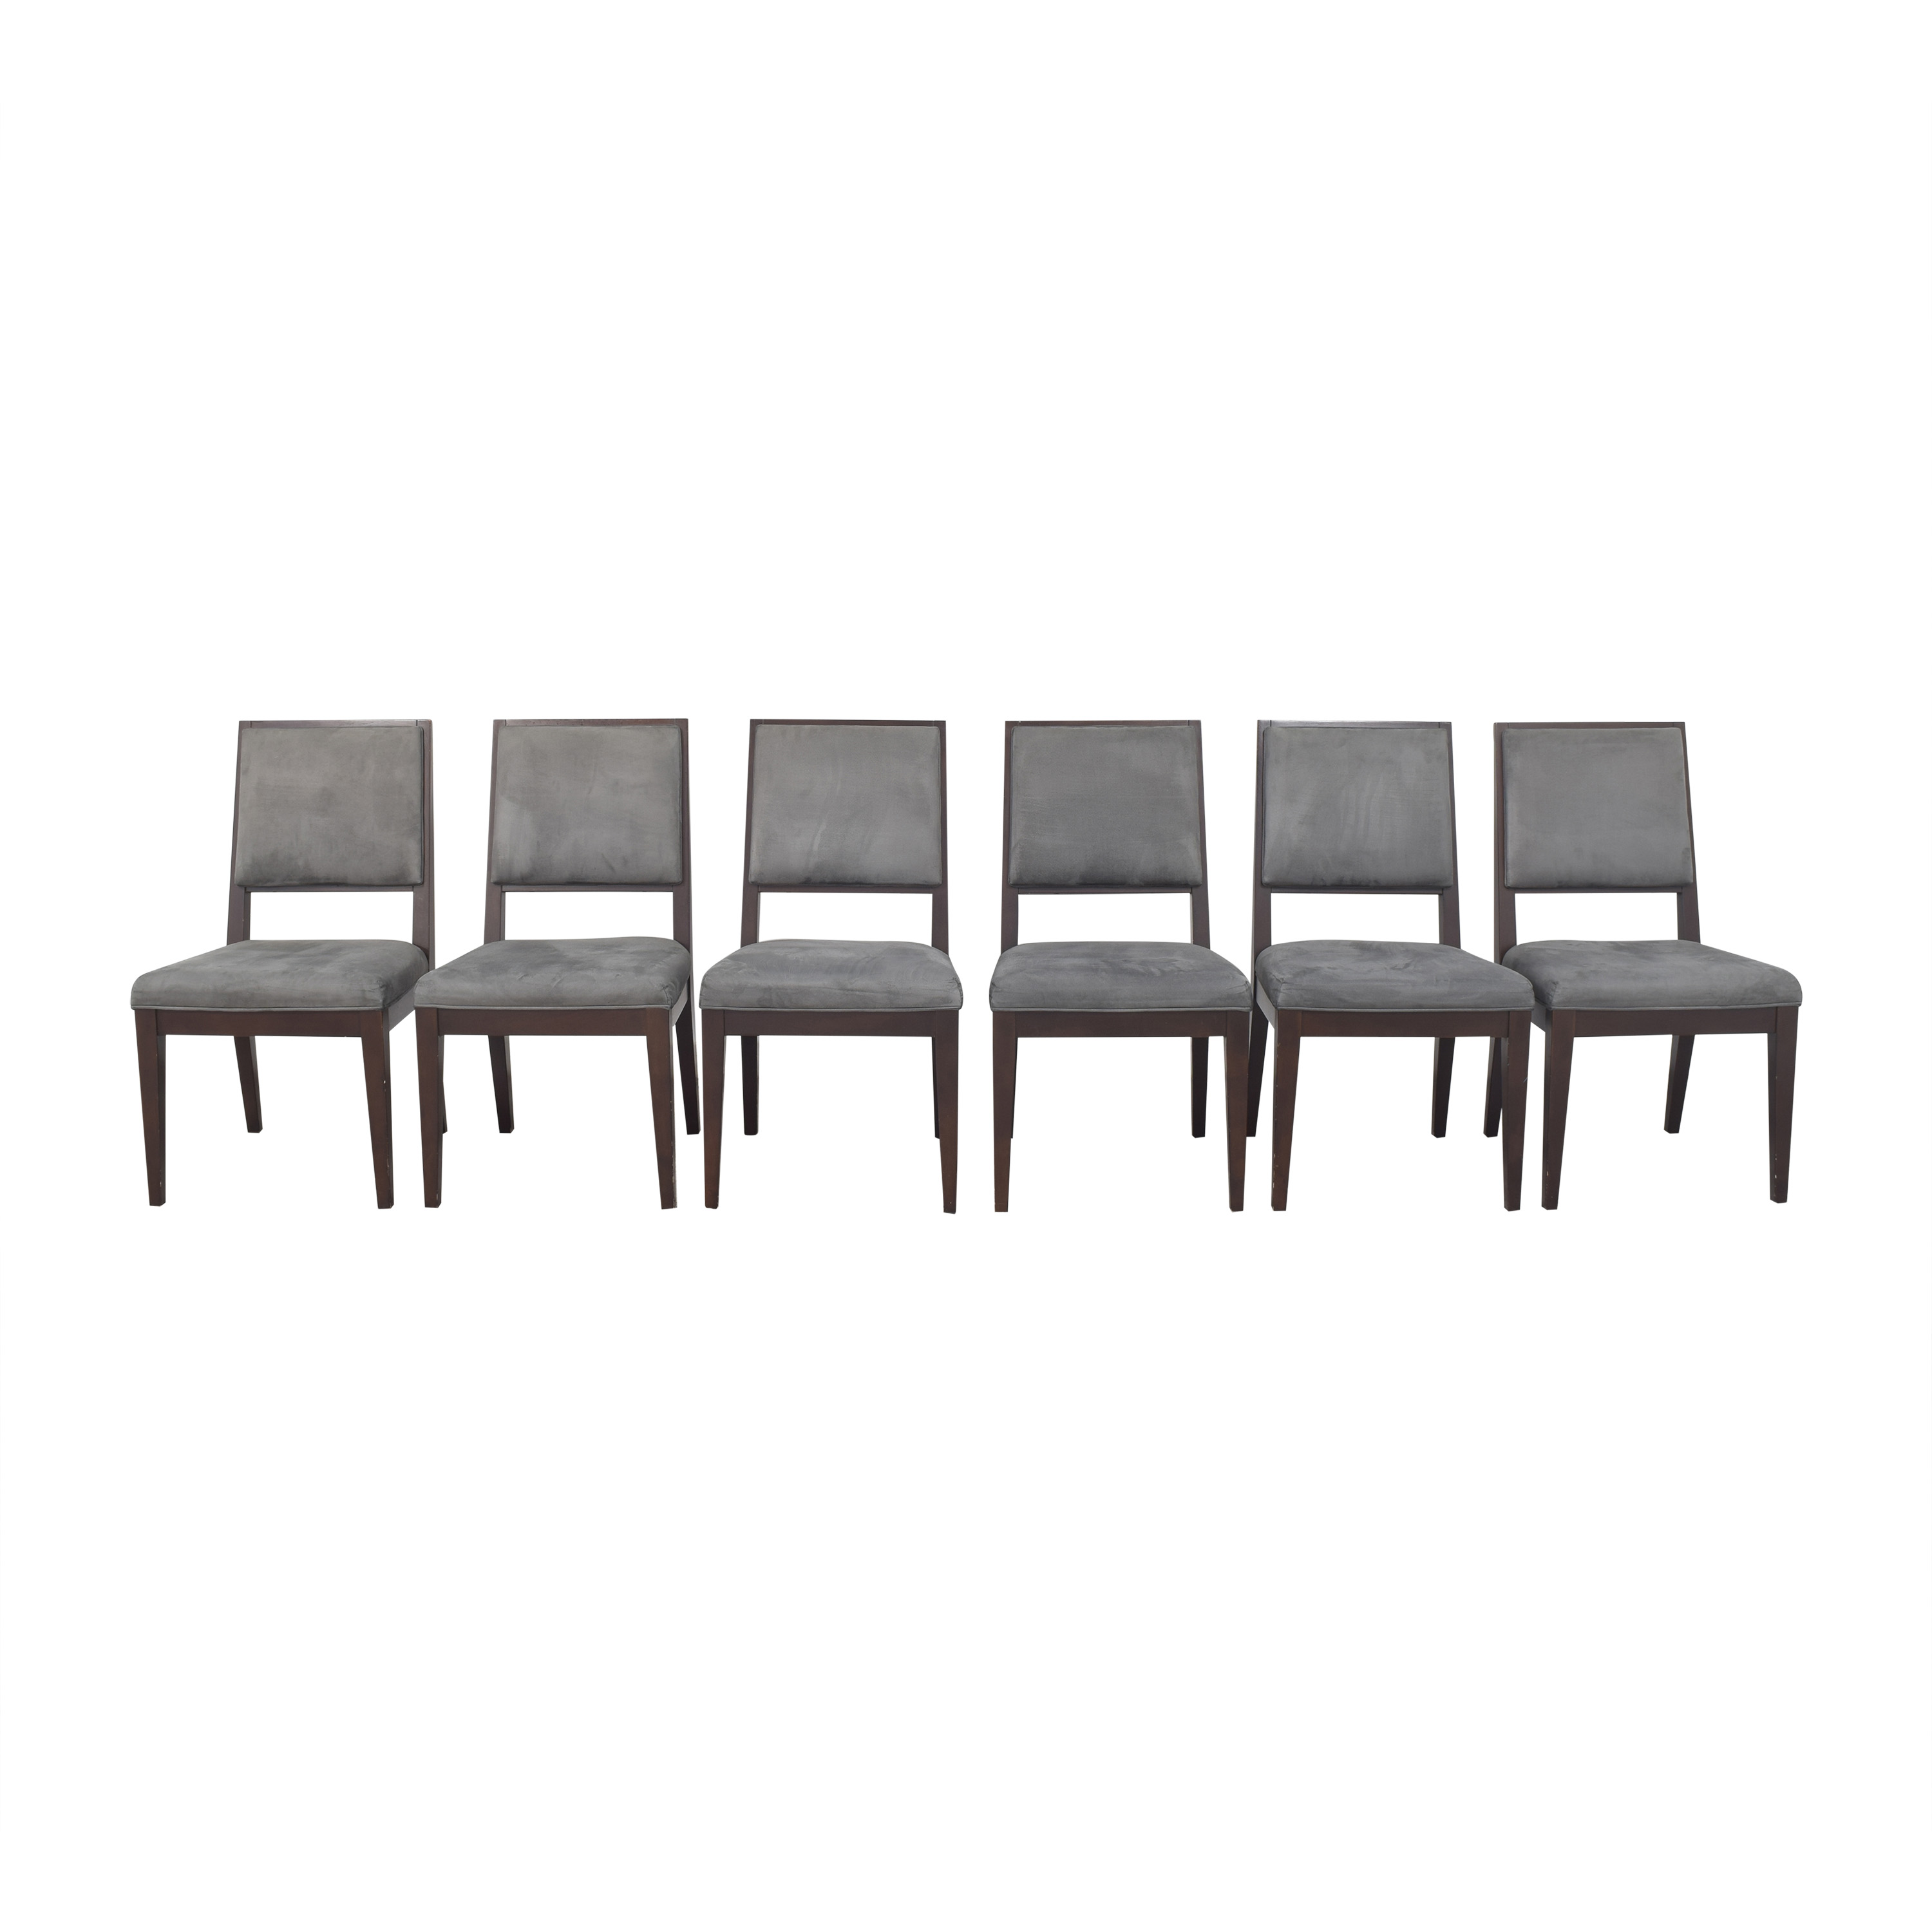 Crate & Barrel Crate & Barrel Square Back Dining Chairs second hand